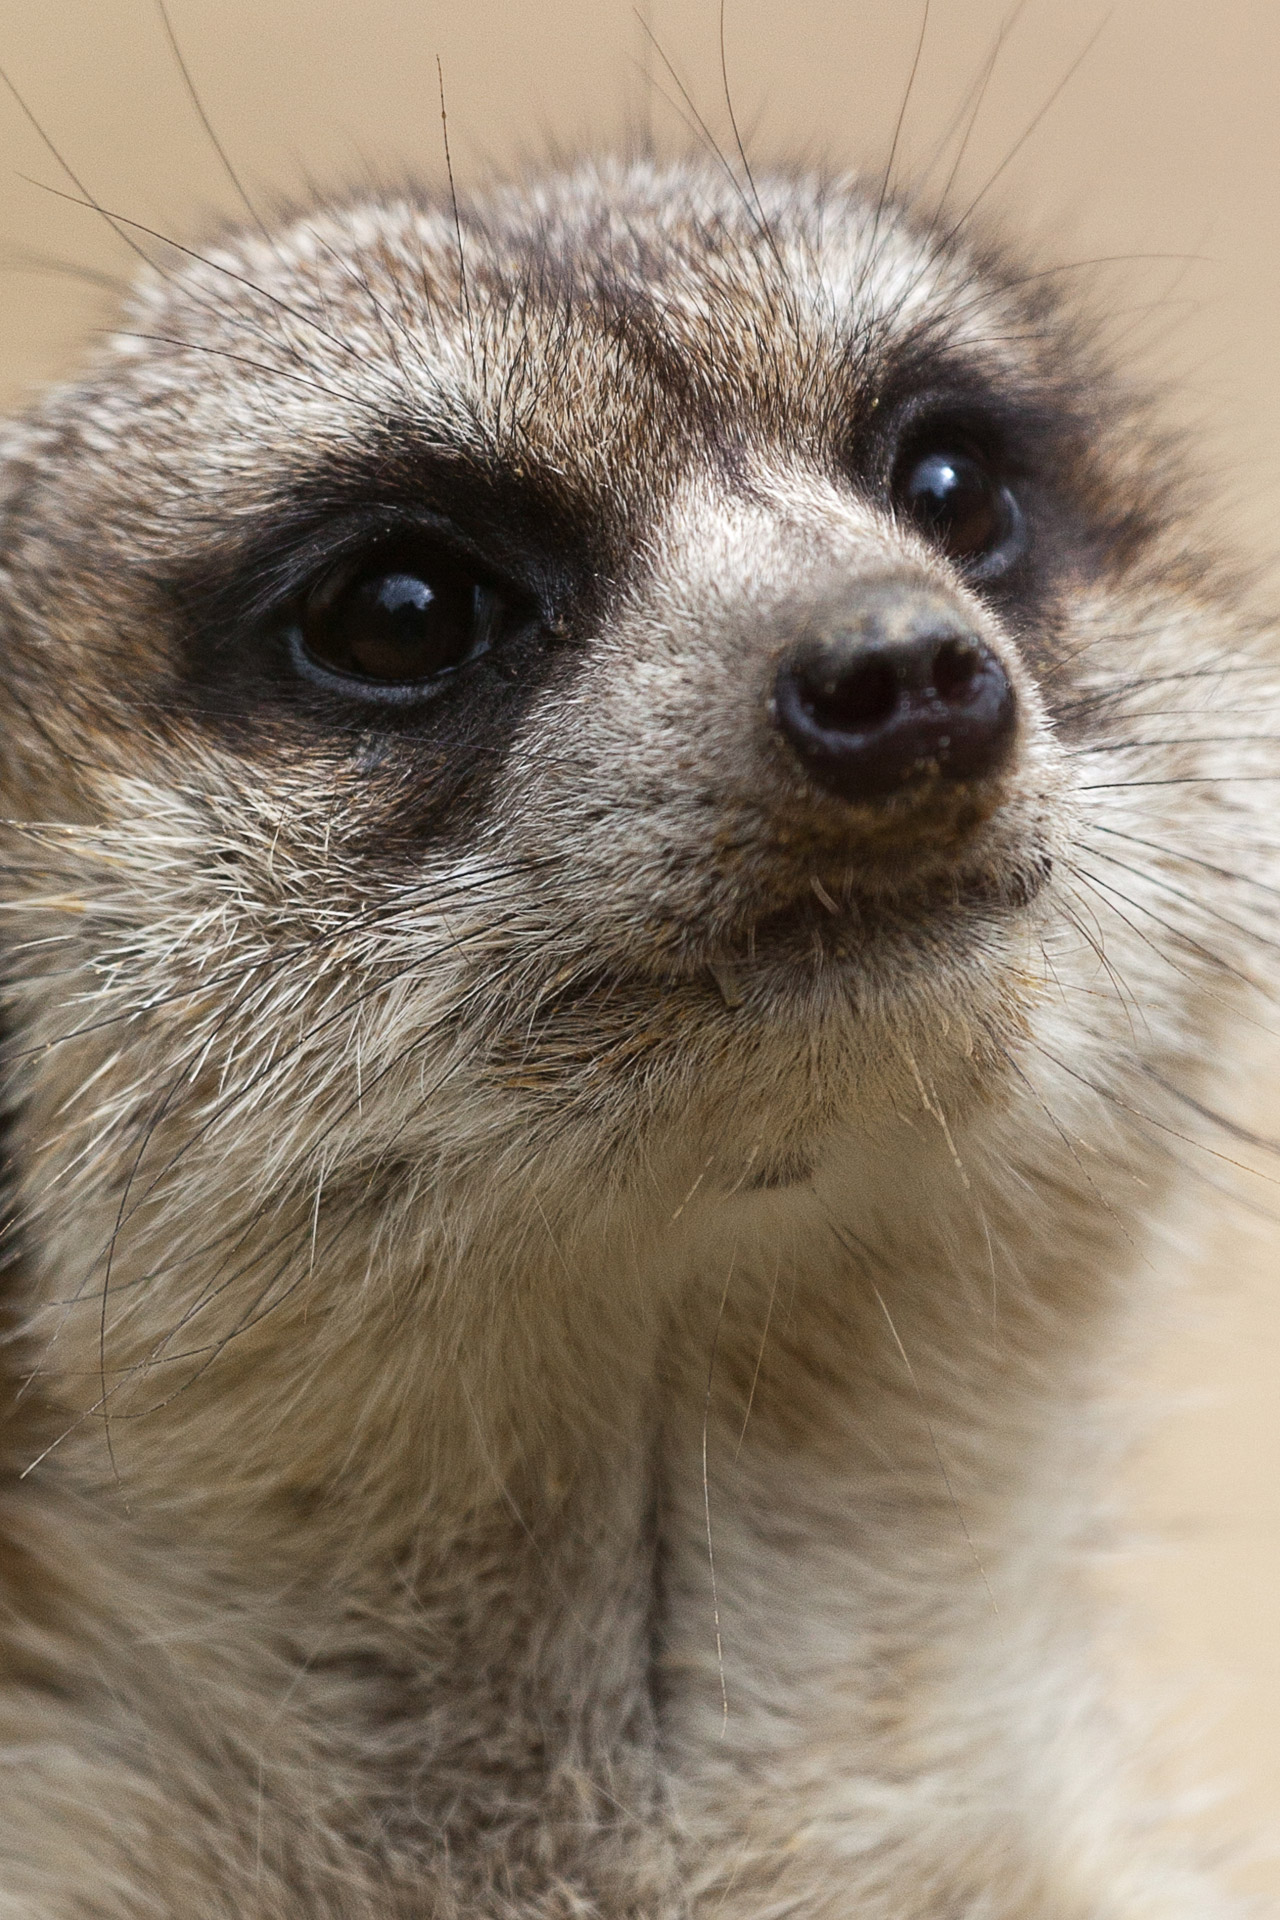 Cute Wallpaper Meerkat Portrait Free Stock Photo Public Domain Pictures